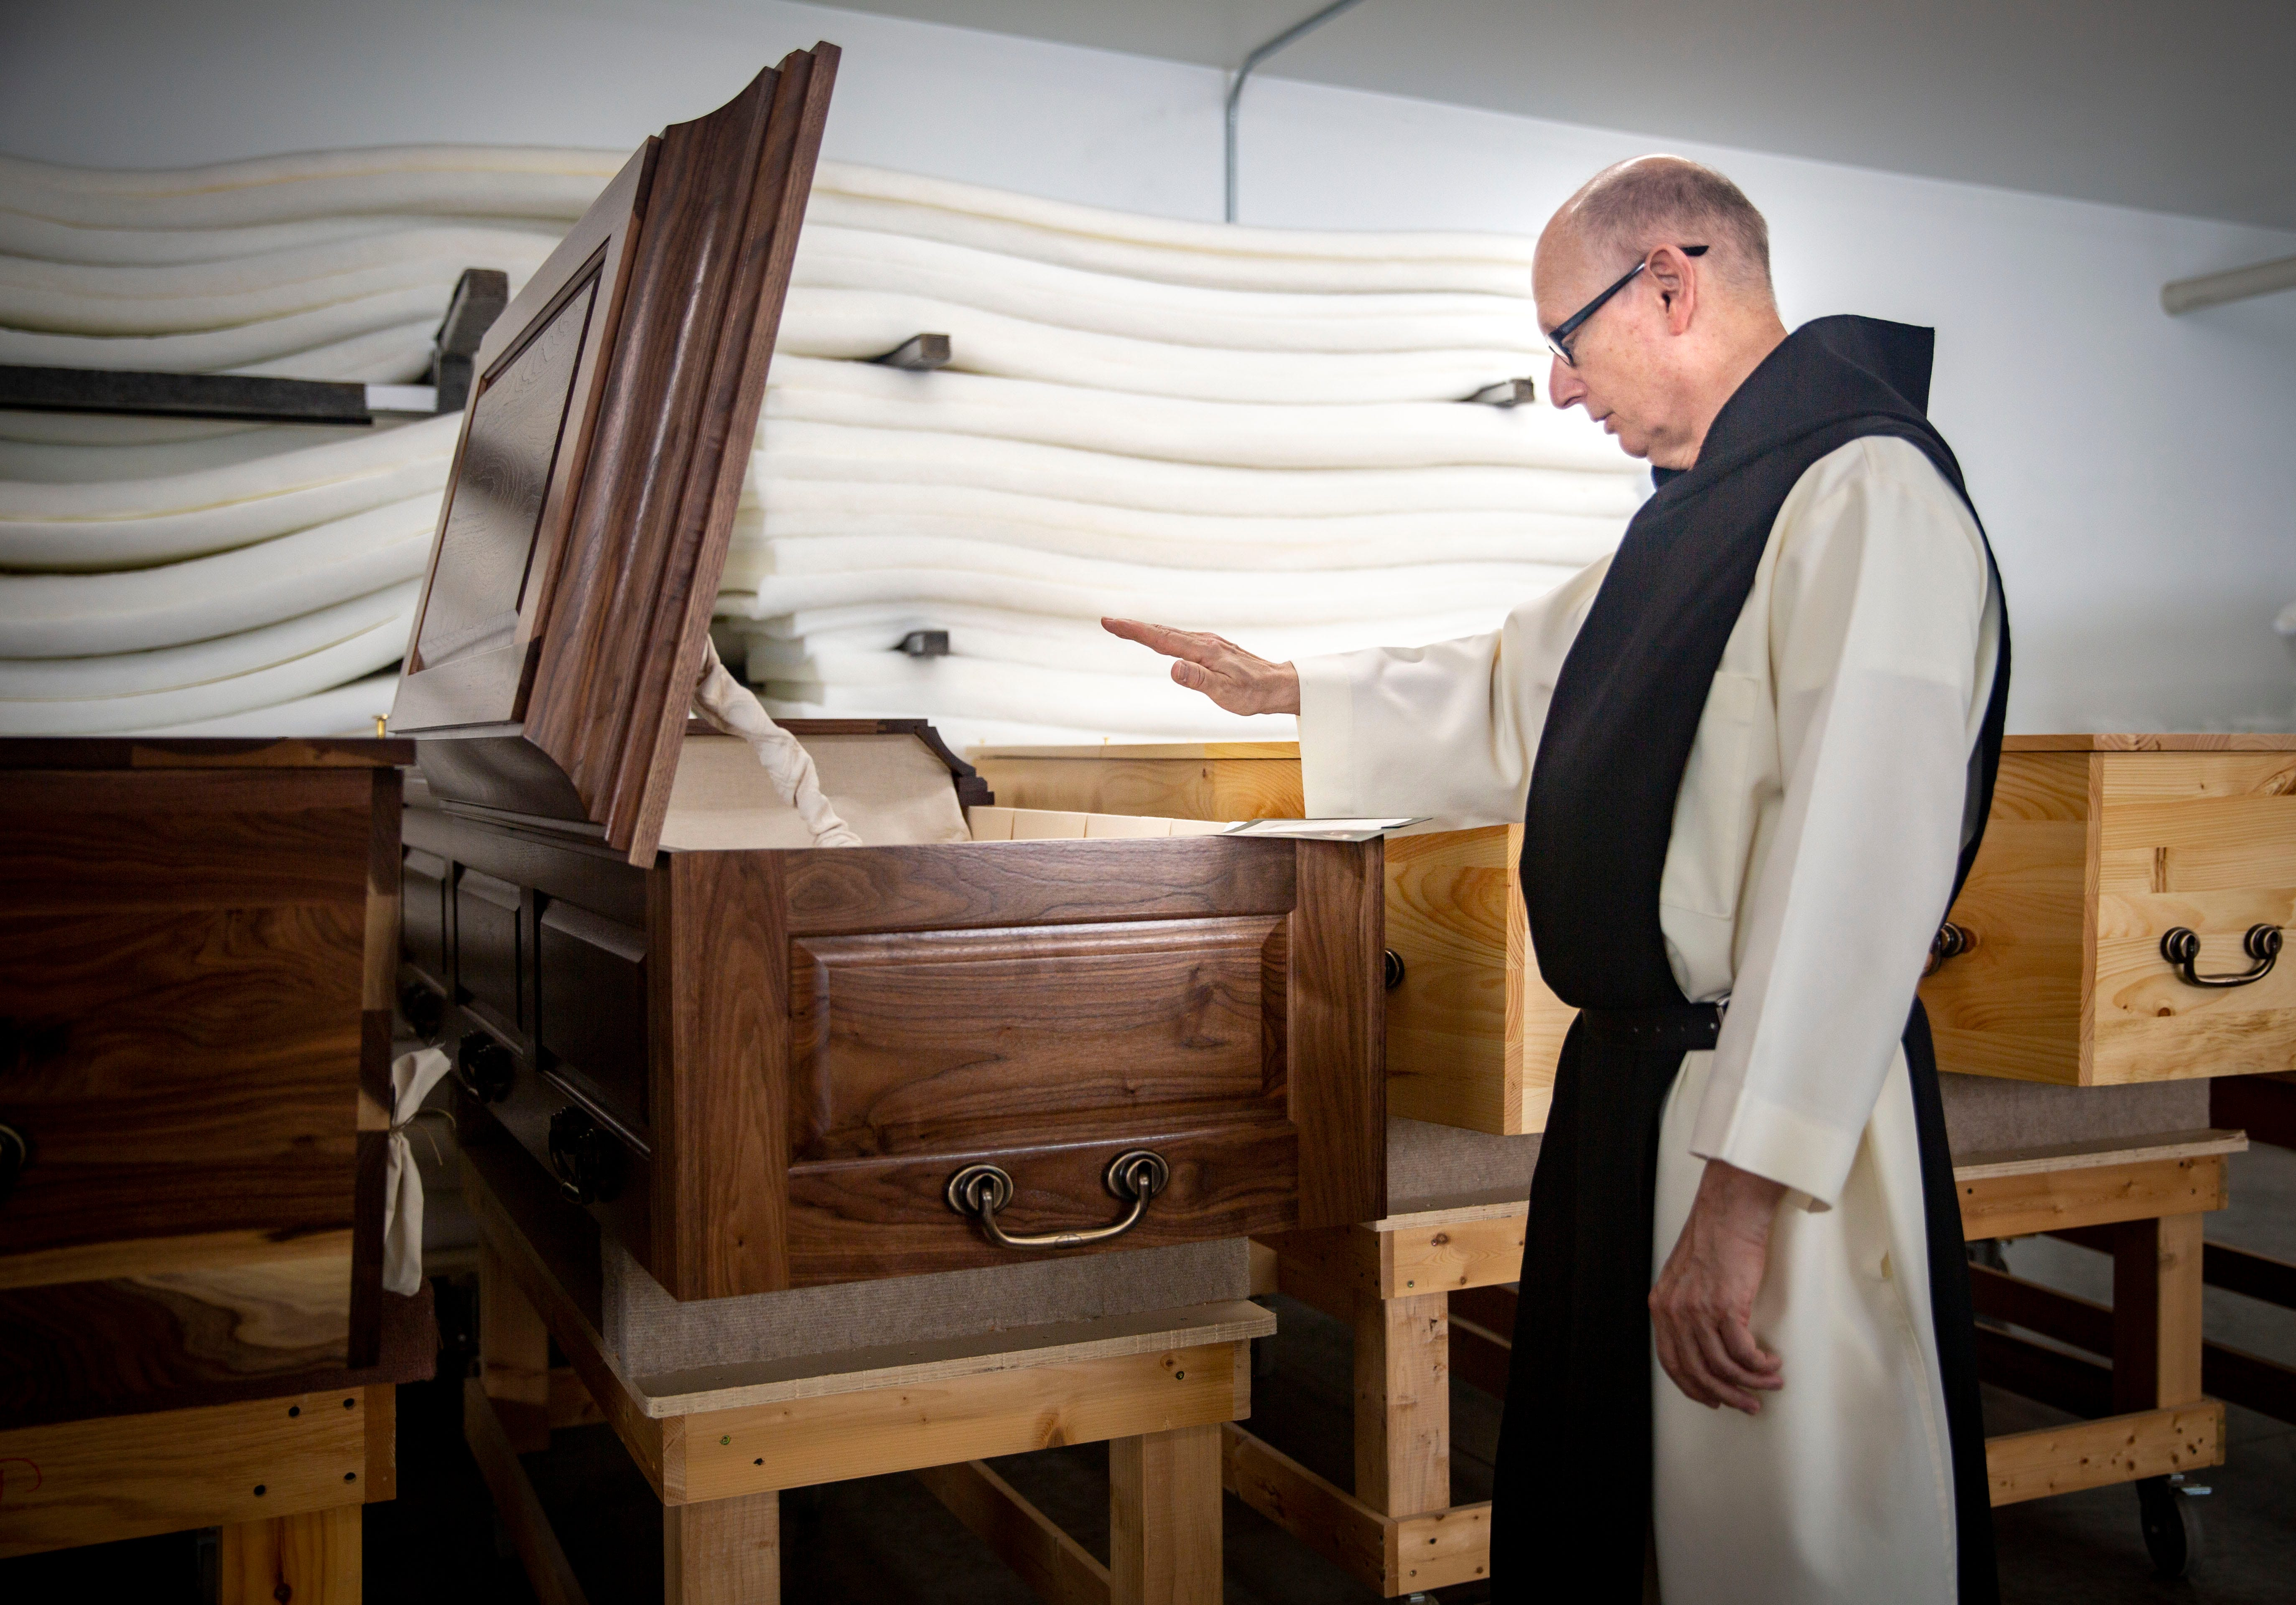 Trappist monk Brother Paul-Andrew Tanner blesses a casket in the Trappist Caskets workshop near the New Melleray Abbey southwest of Dubuque on March 16, 2021.